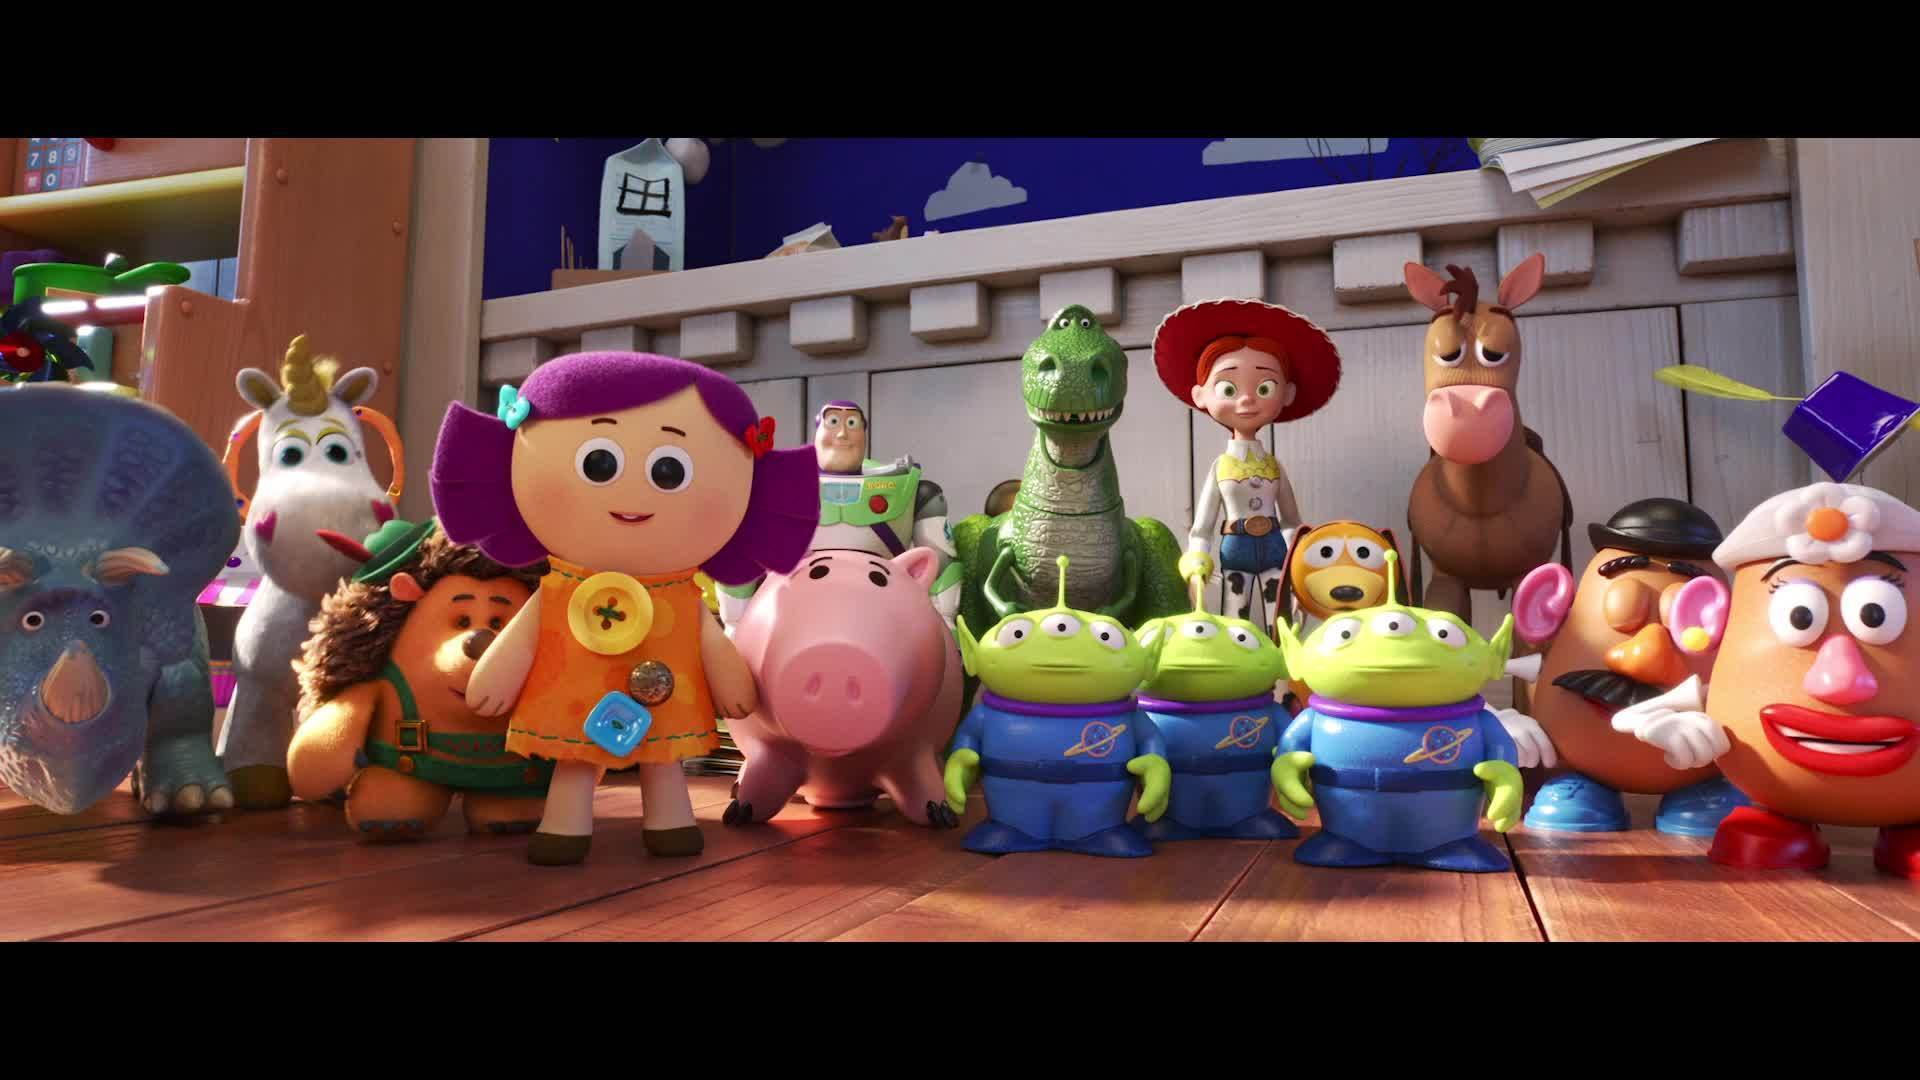 Toy Story 4 | Old Friends, New Adventures